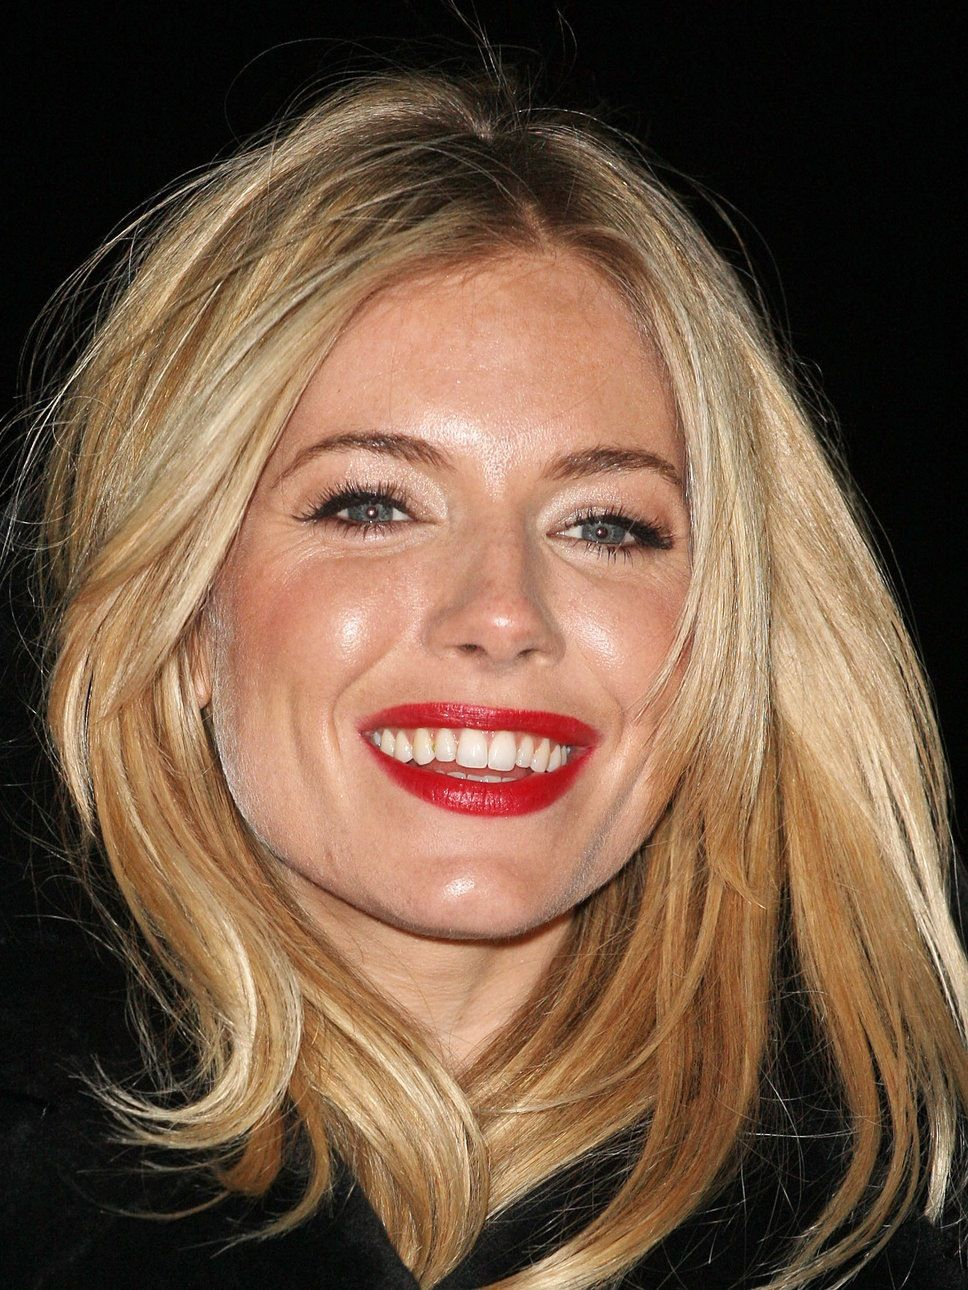 sienna miller makeup tutorial